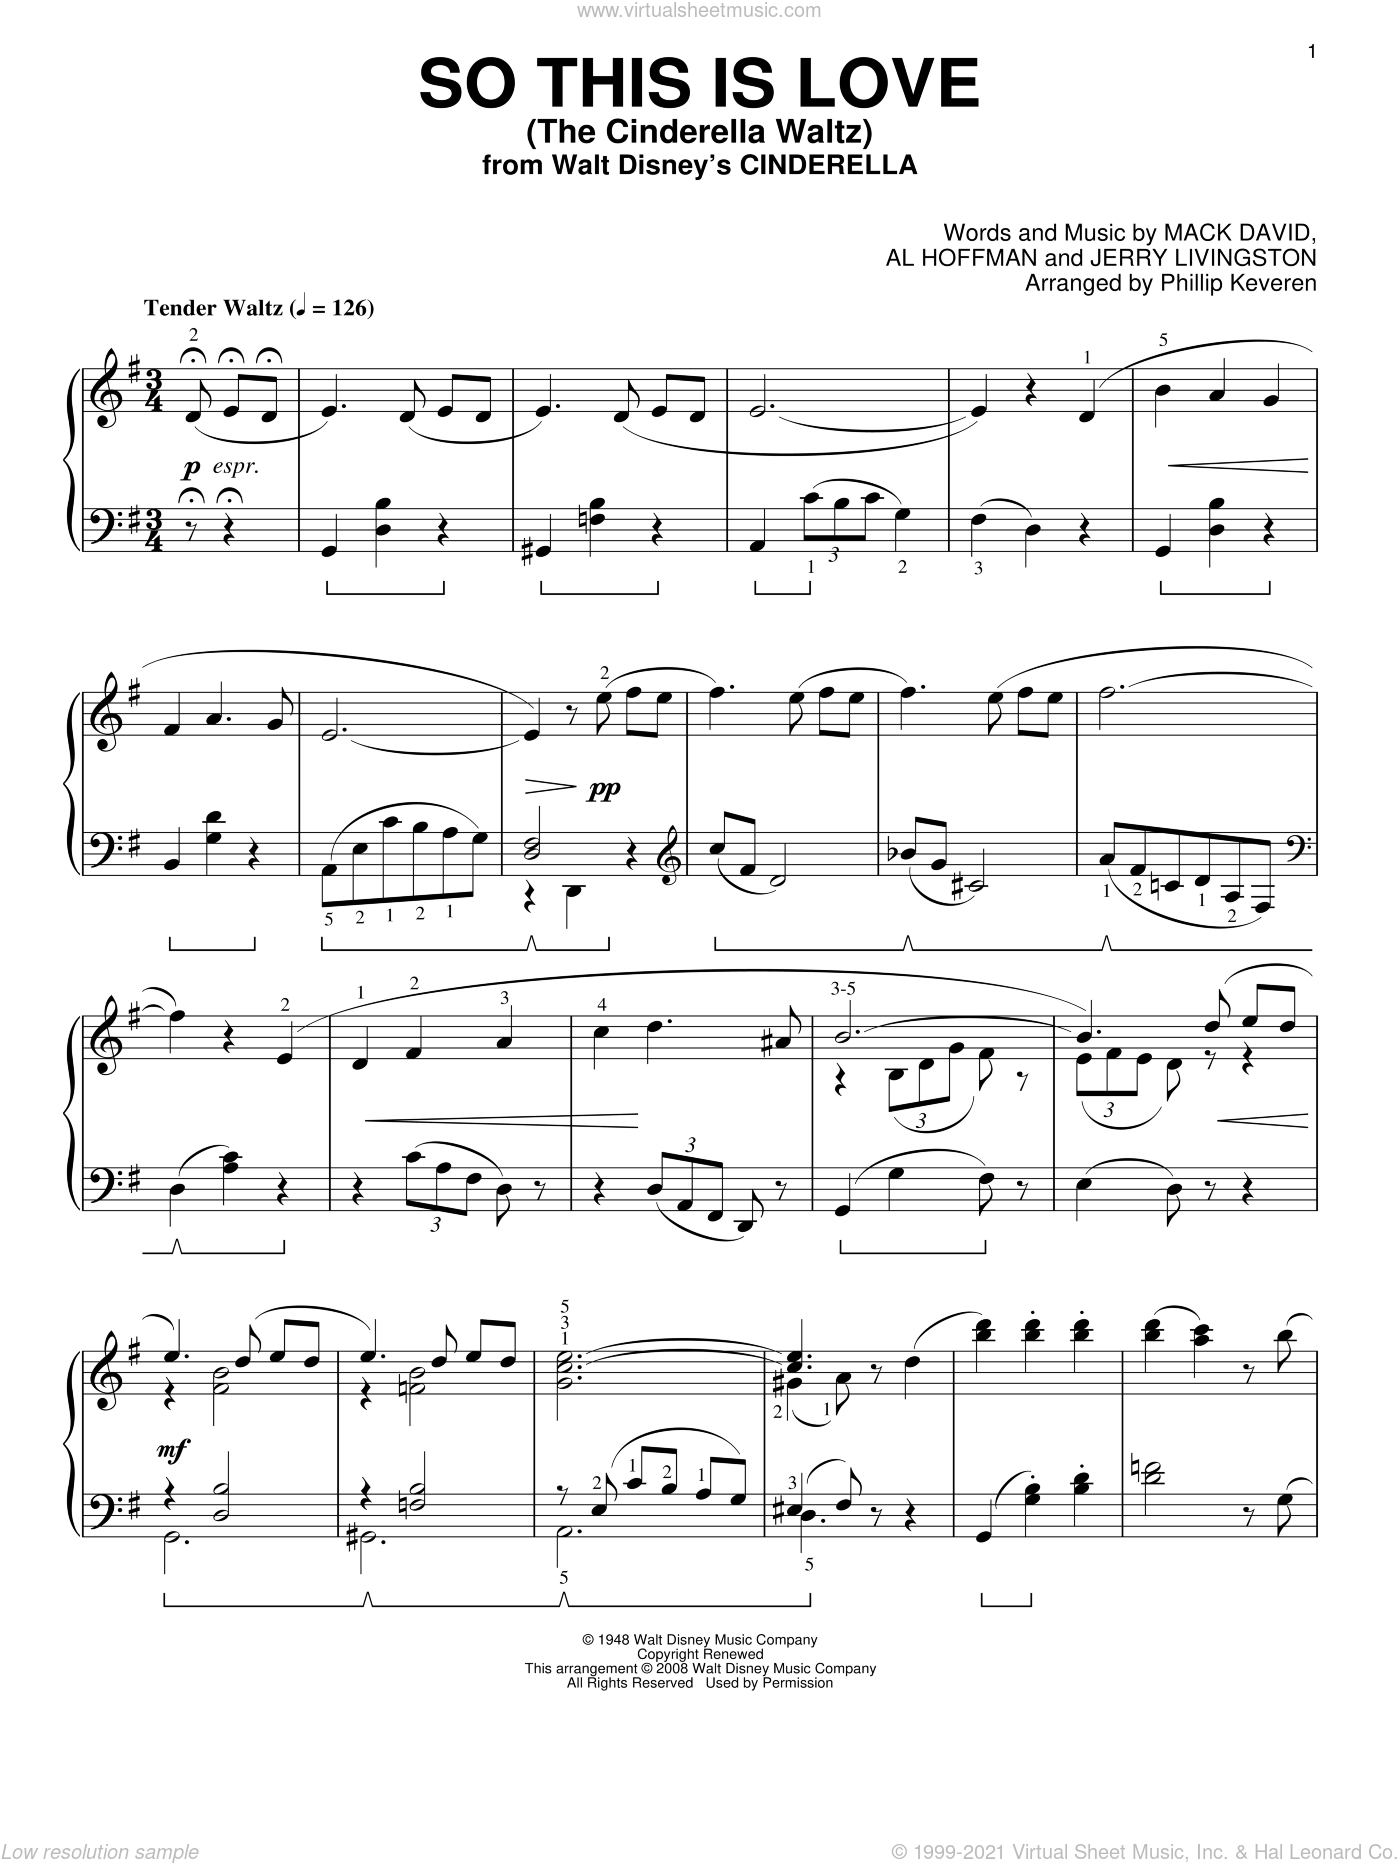 So This Is Love (The Cinderella Waltz) sheet music for piano solo by Mack David, Phillip Keveren, Al Hoffman and Jerry Livingston, intermediate. Score Image Preview.